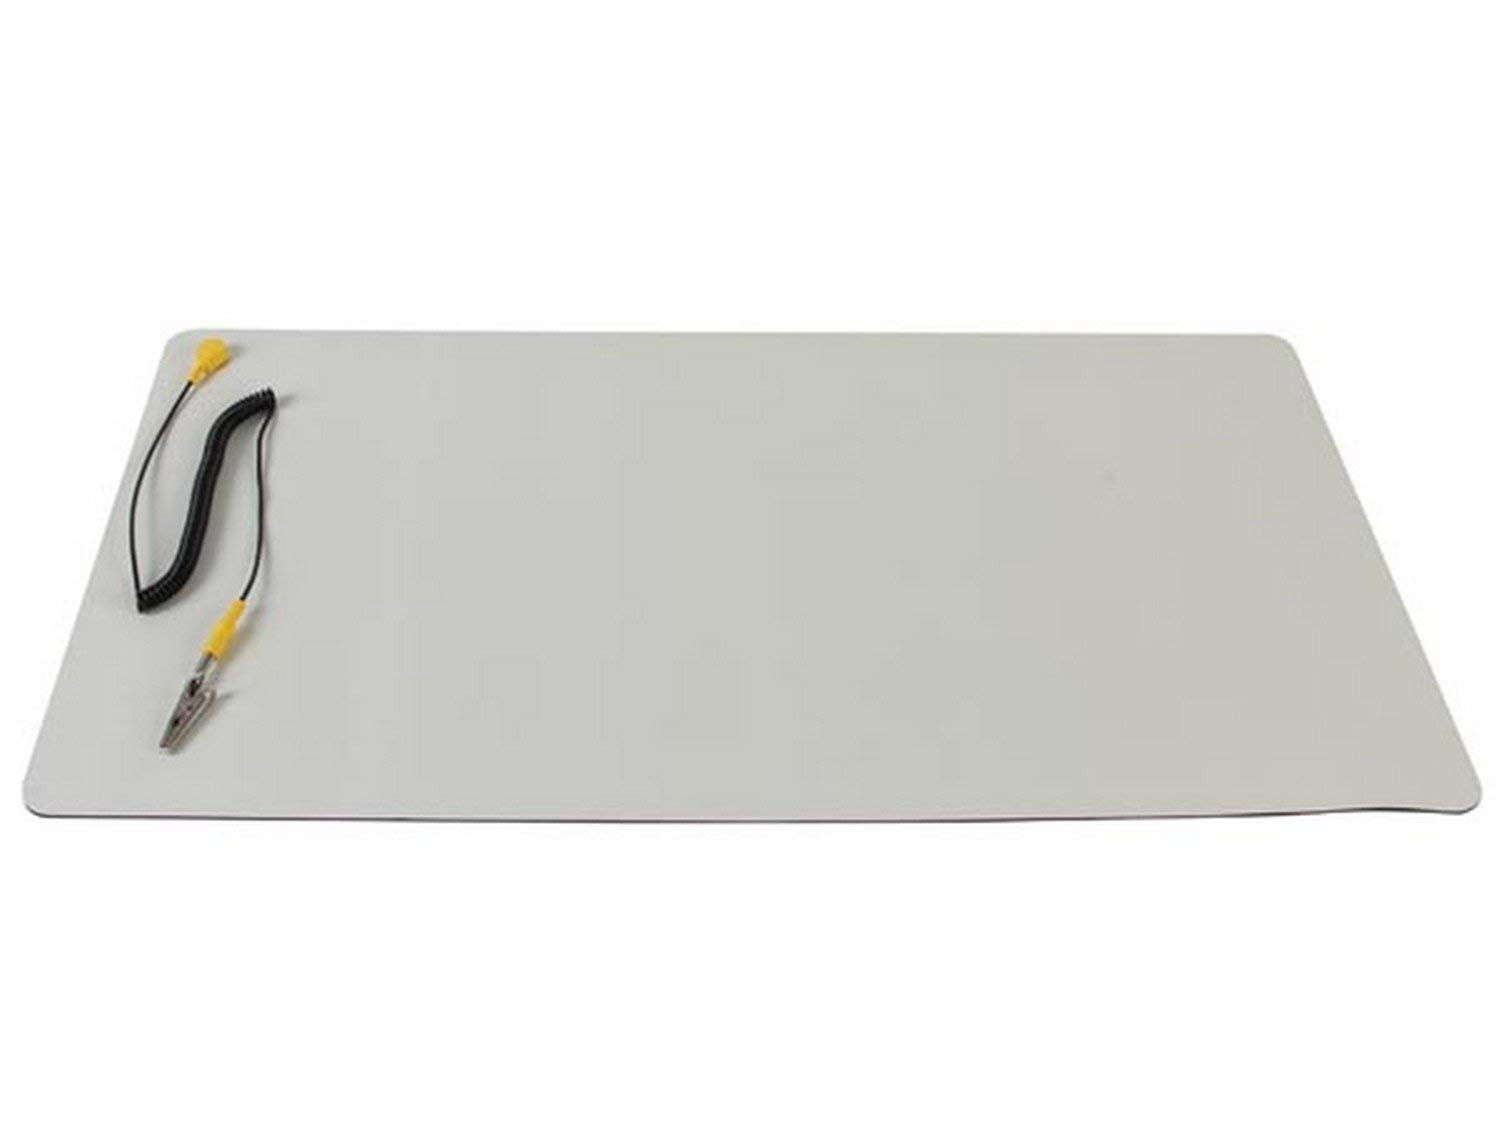 Velleman AS4 Anti-Static Mat with Ground Cable - Desktop static dissipative mat - 11.8'' x 22''